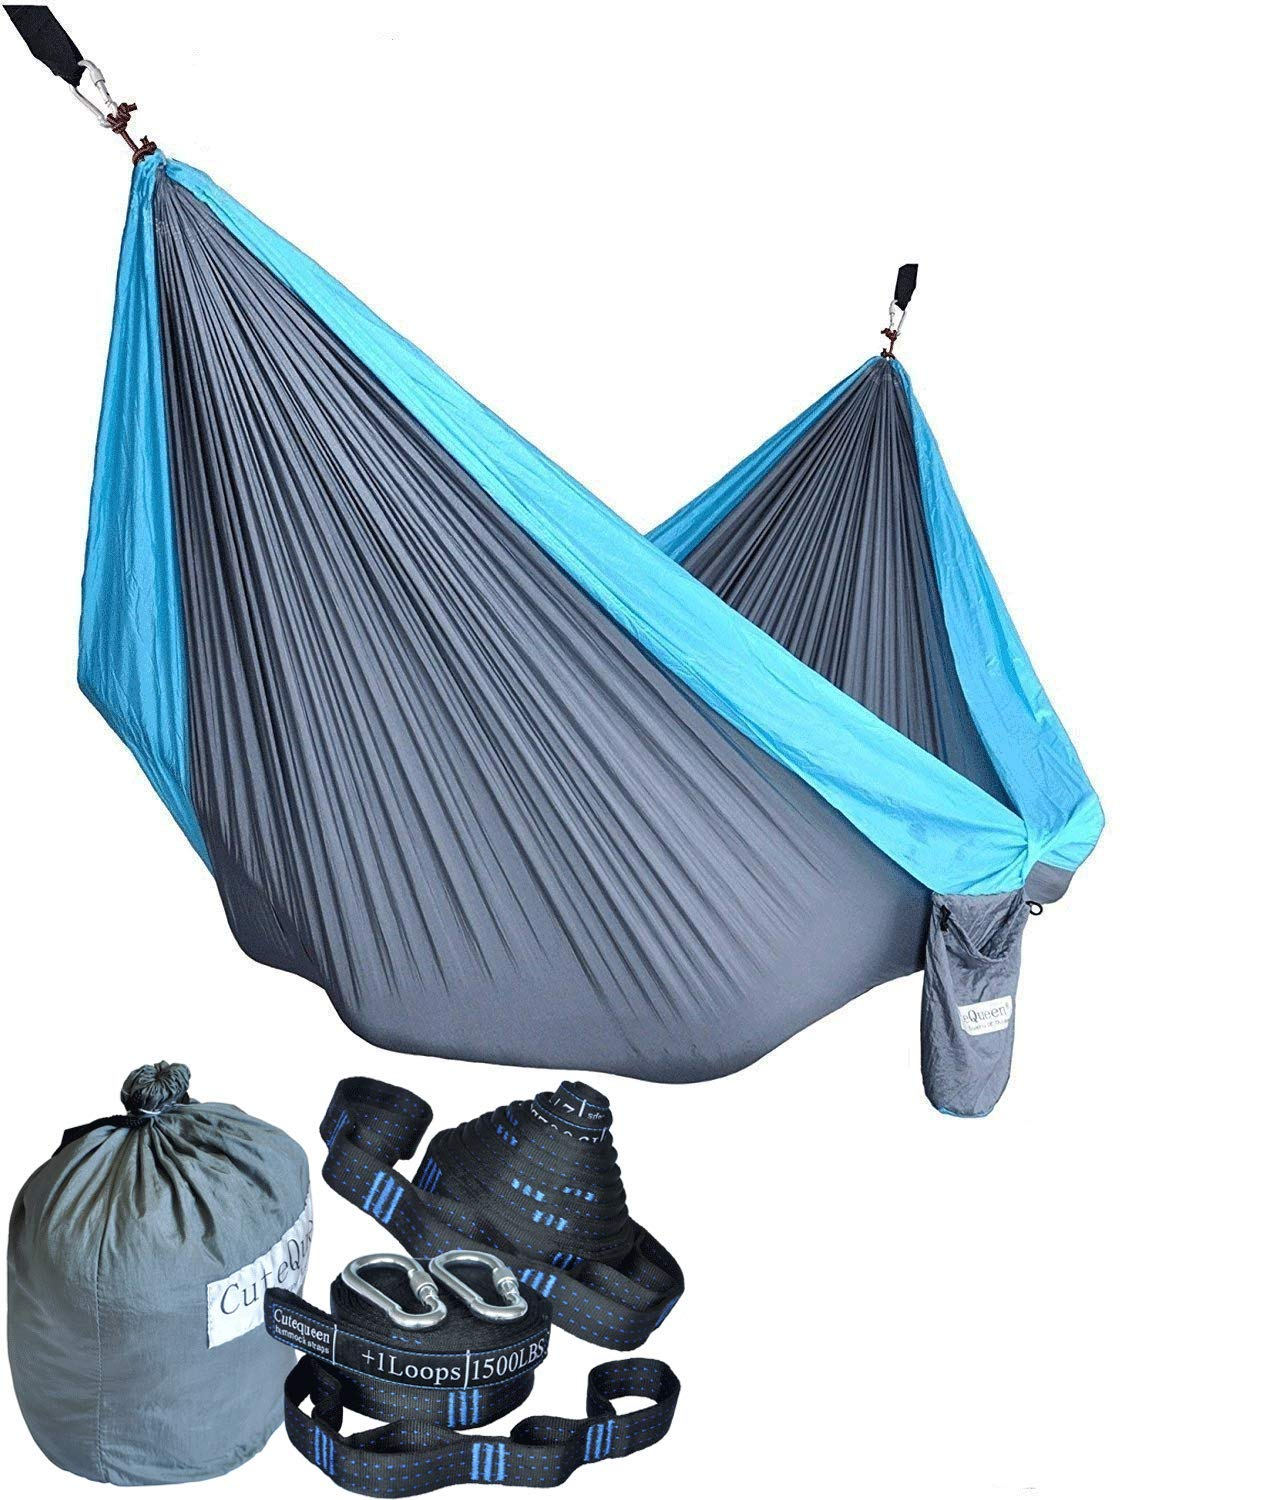 Cutequeen Trading Parachute Nylon Fabric Hammock with Tree Straps;Color: Grey/Sky Blue